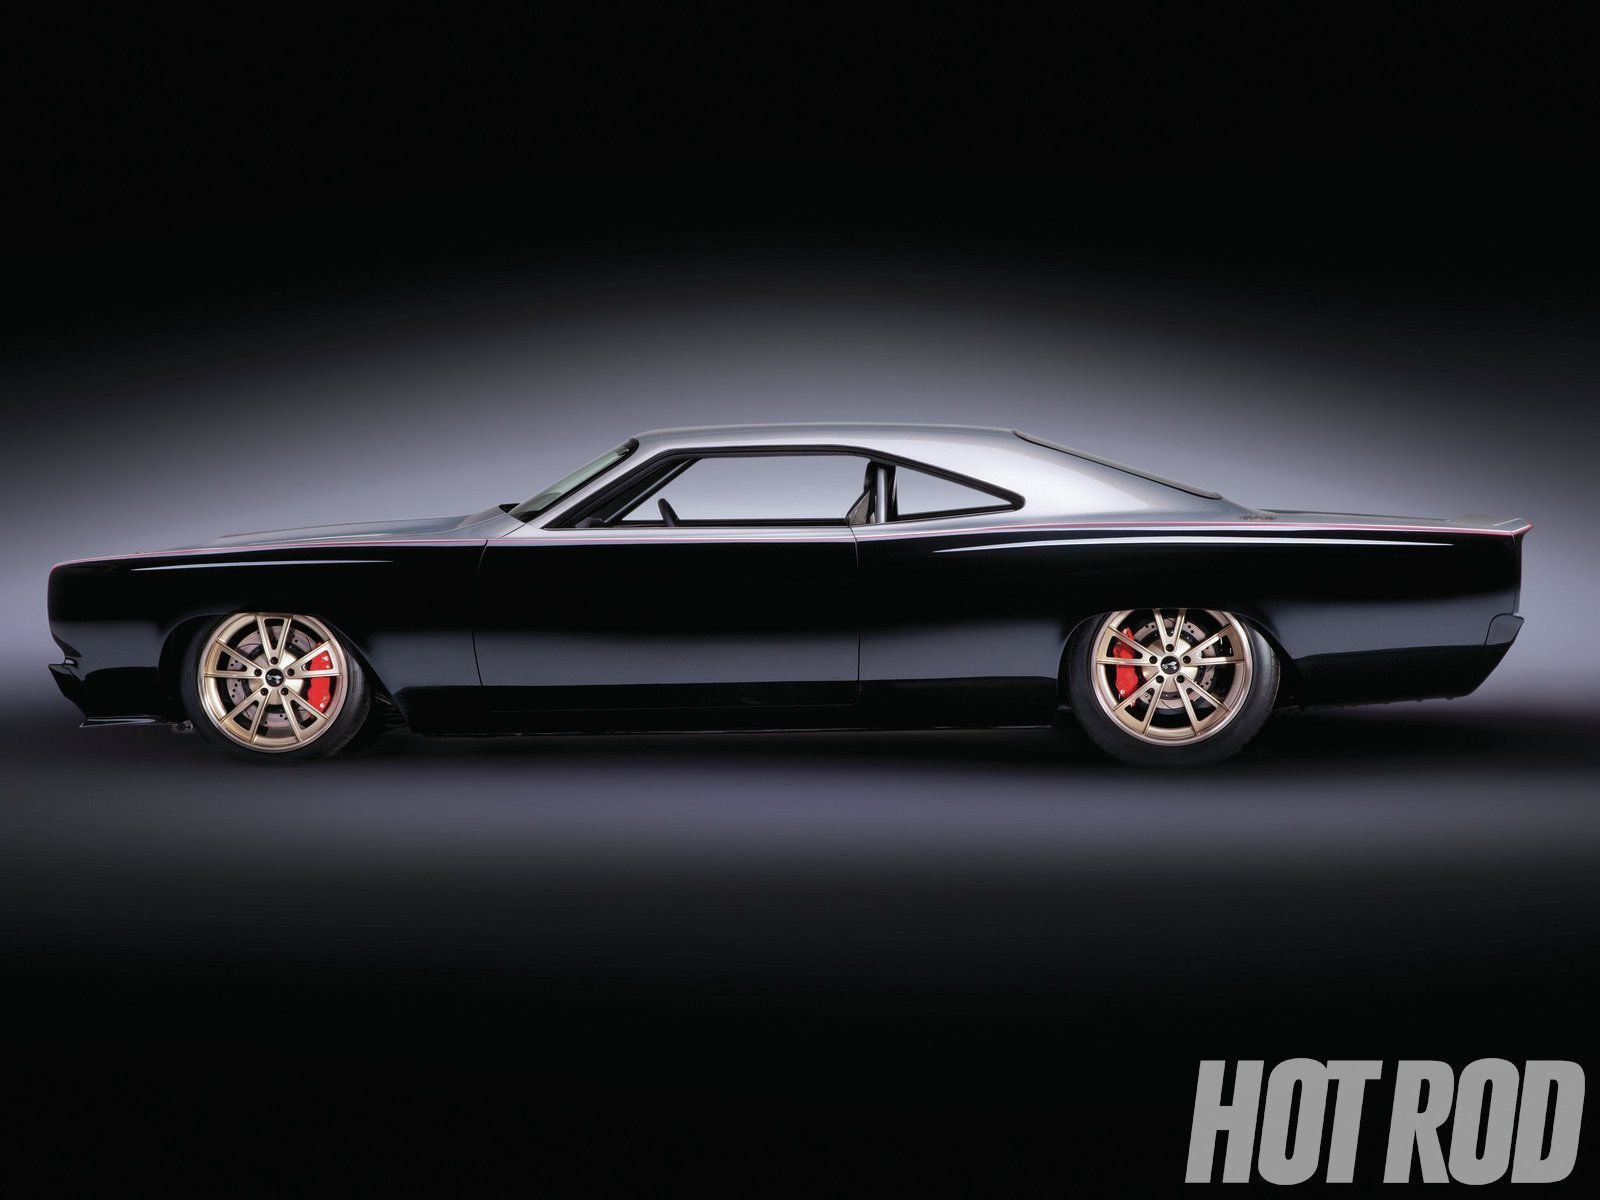 69 Roadrunner! Awesome! One of my first American Muscle cars ...